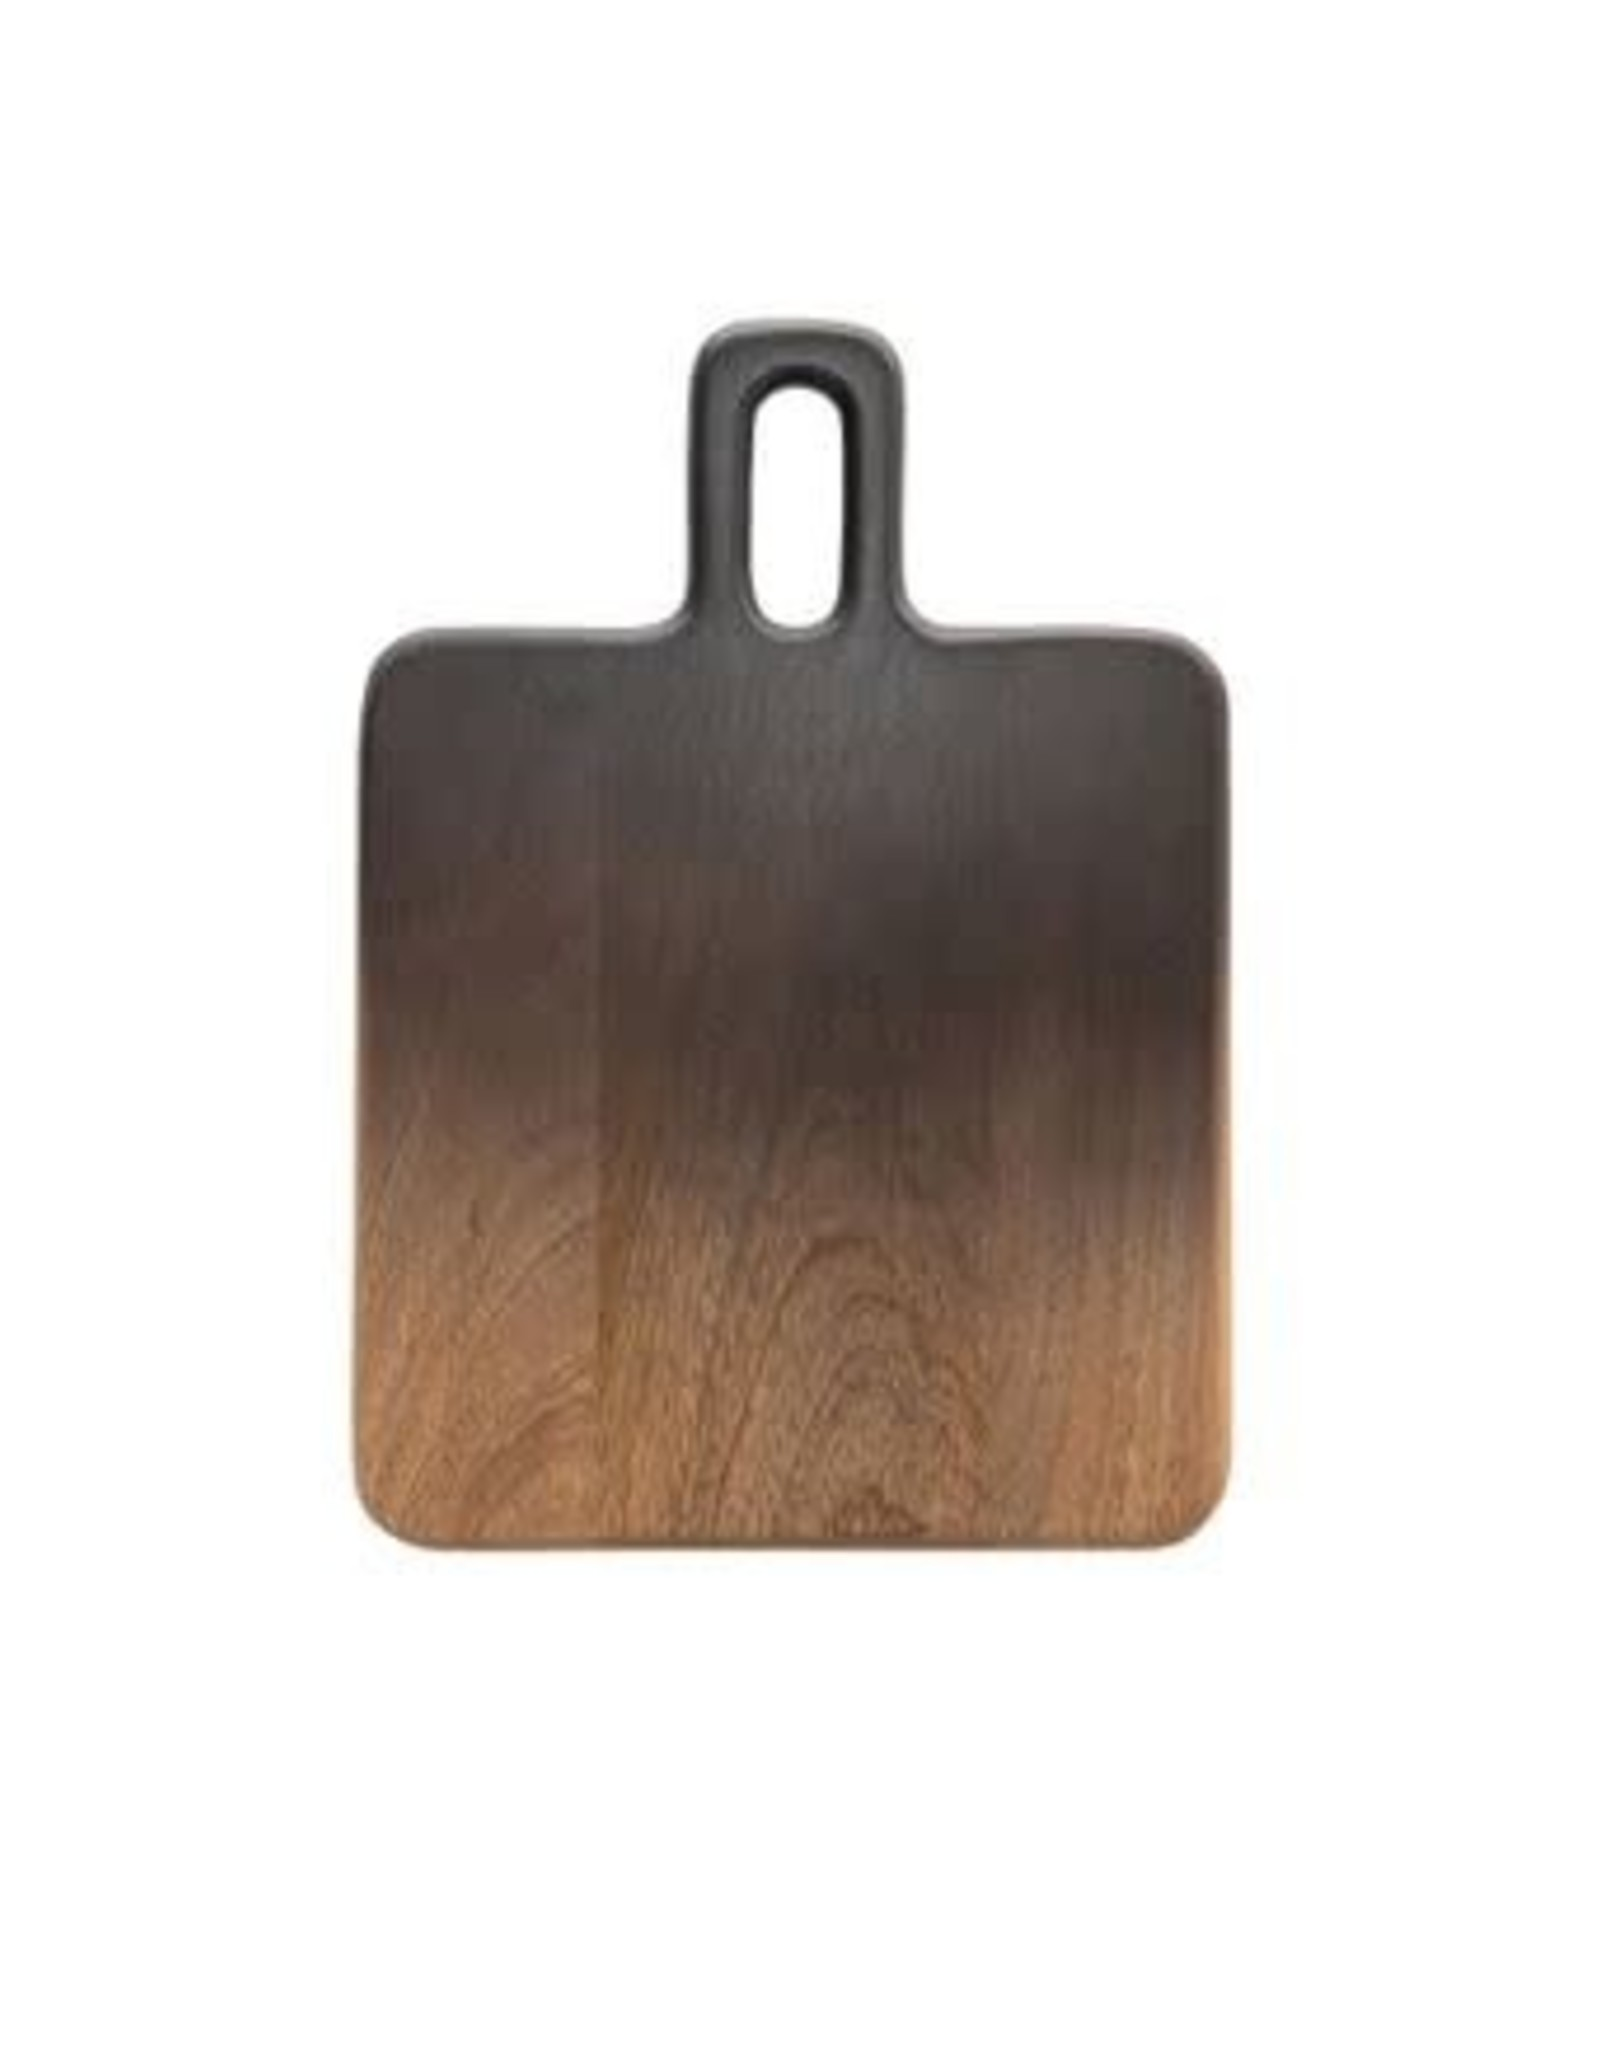 Mango Wood Cutting Board - Black & Natural Ombre